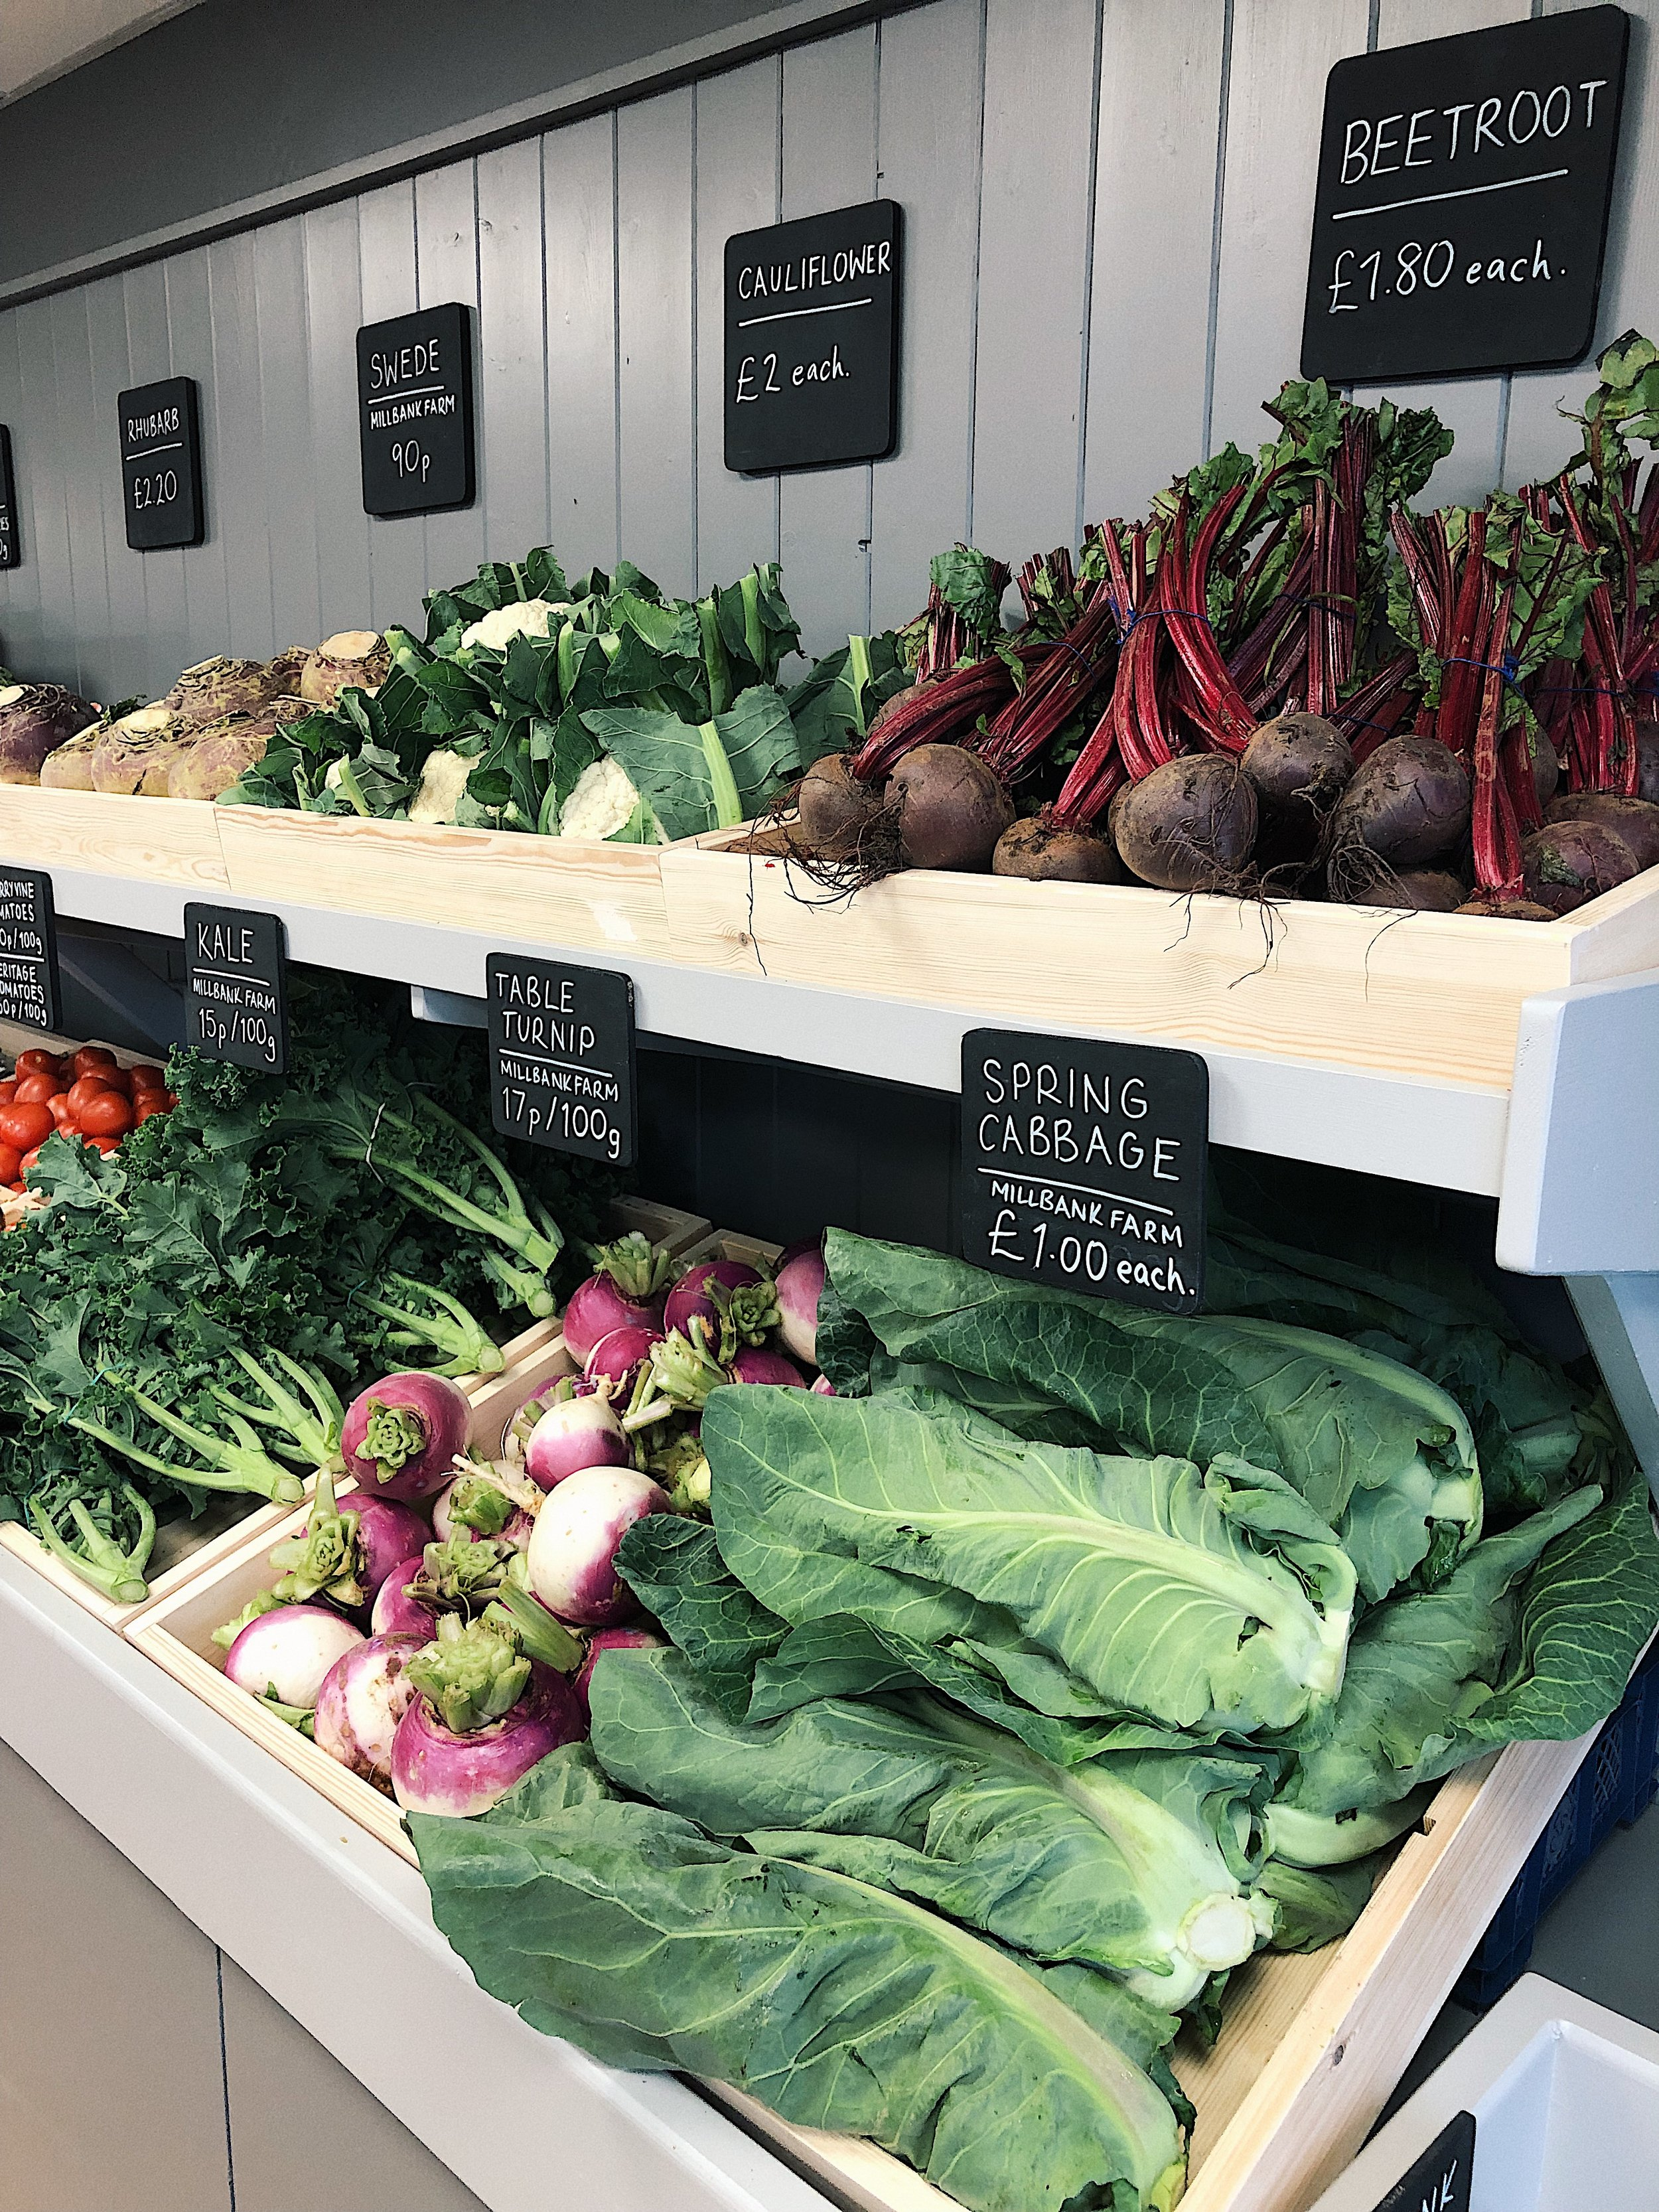 Much of the produce on offer is grown just 7 miles away in Killinchy on the family farm – keeping food miles low and food fresh!